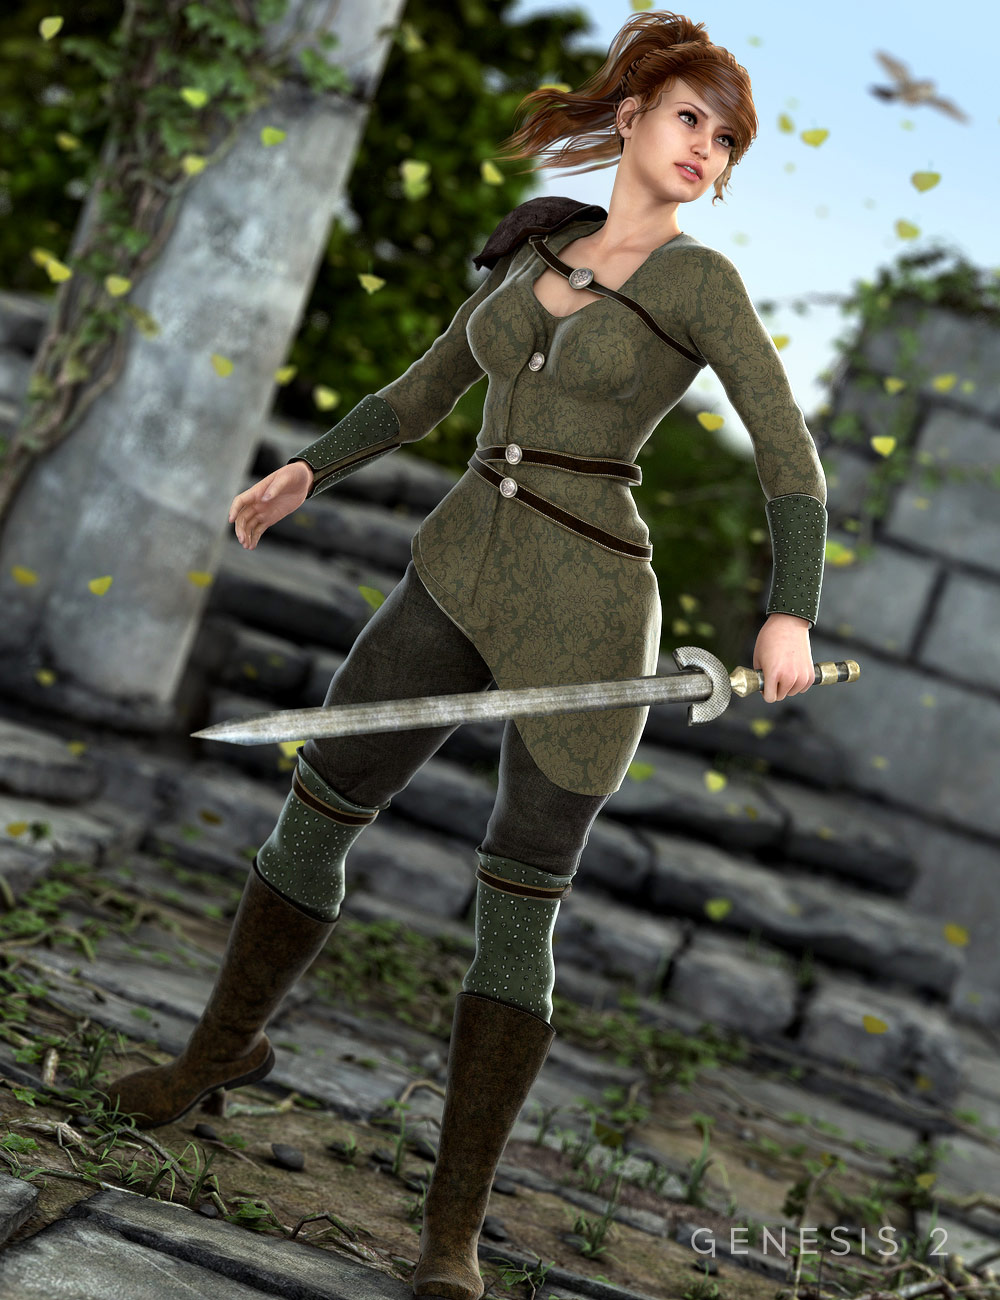 Mythbell for Genesis 2 Female(s) by: SarsaVal3dart, 3D Models by Daz 3D